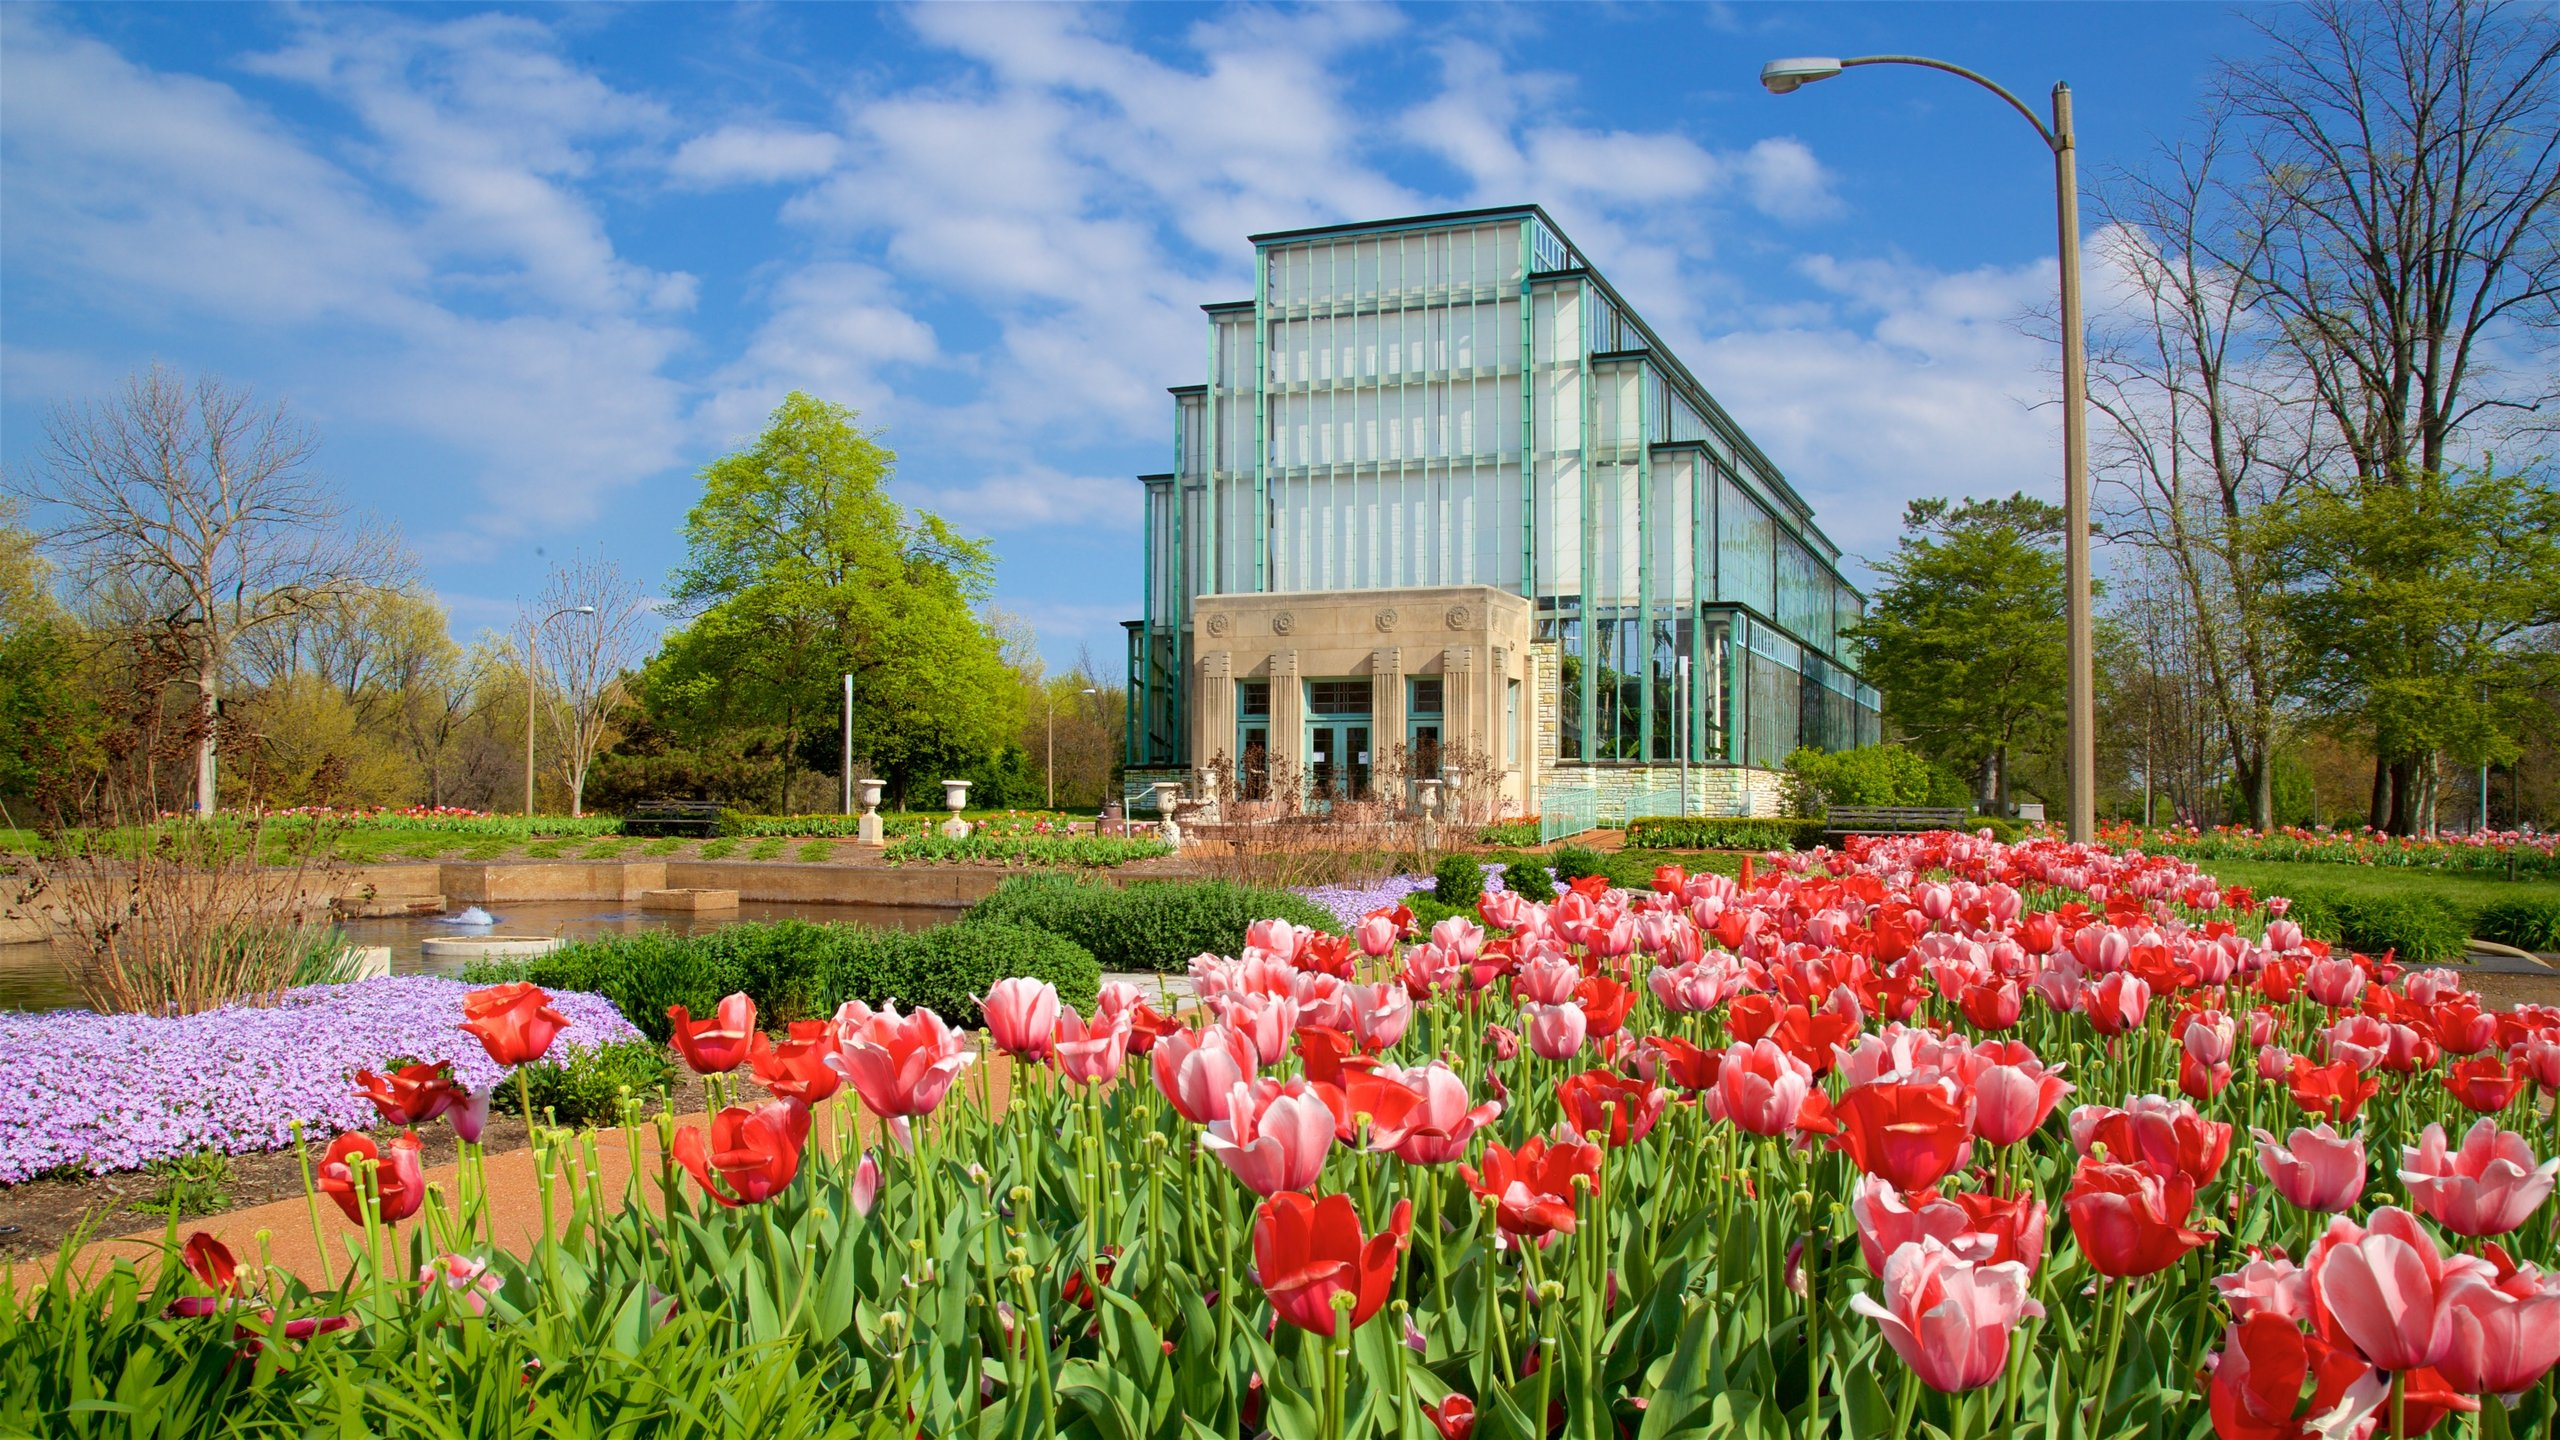 Nature, history and cultural institutions come together in one of the United States' largest urban parks, which buzzes with St. Louis' dynamic community spirit.